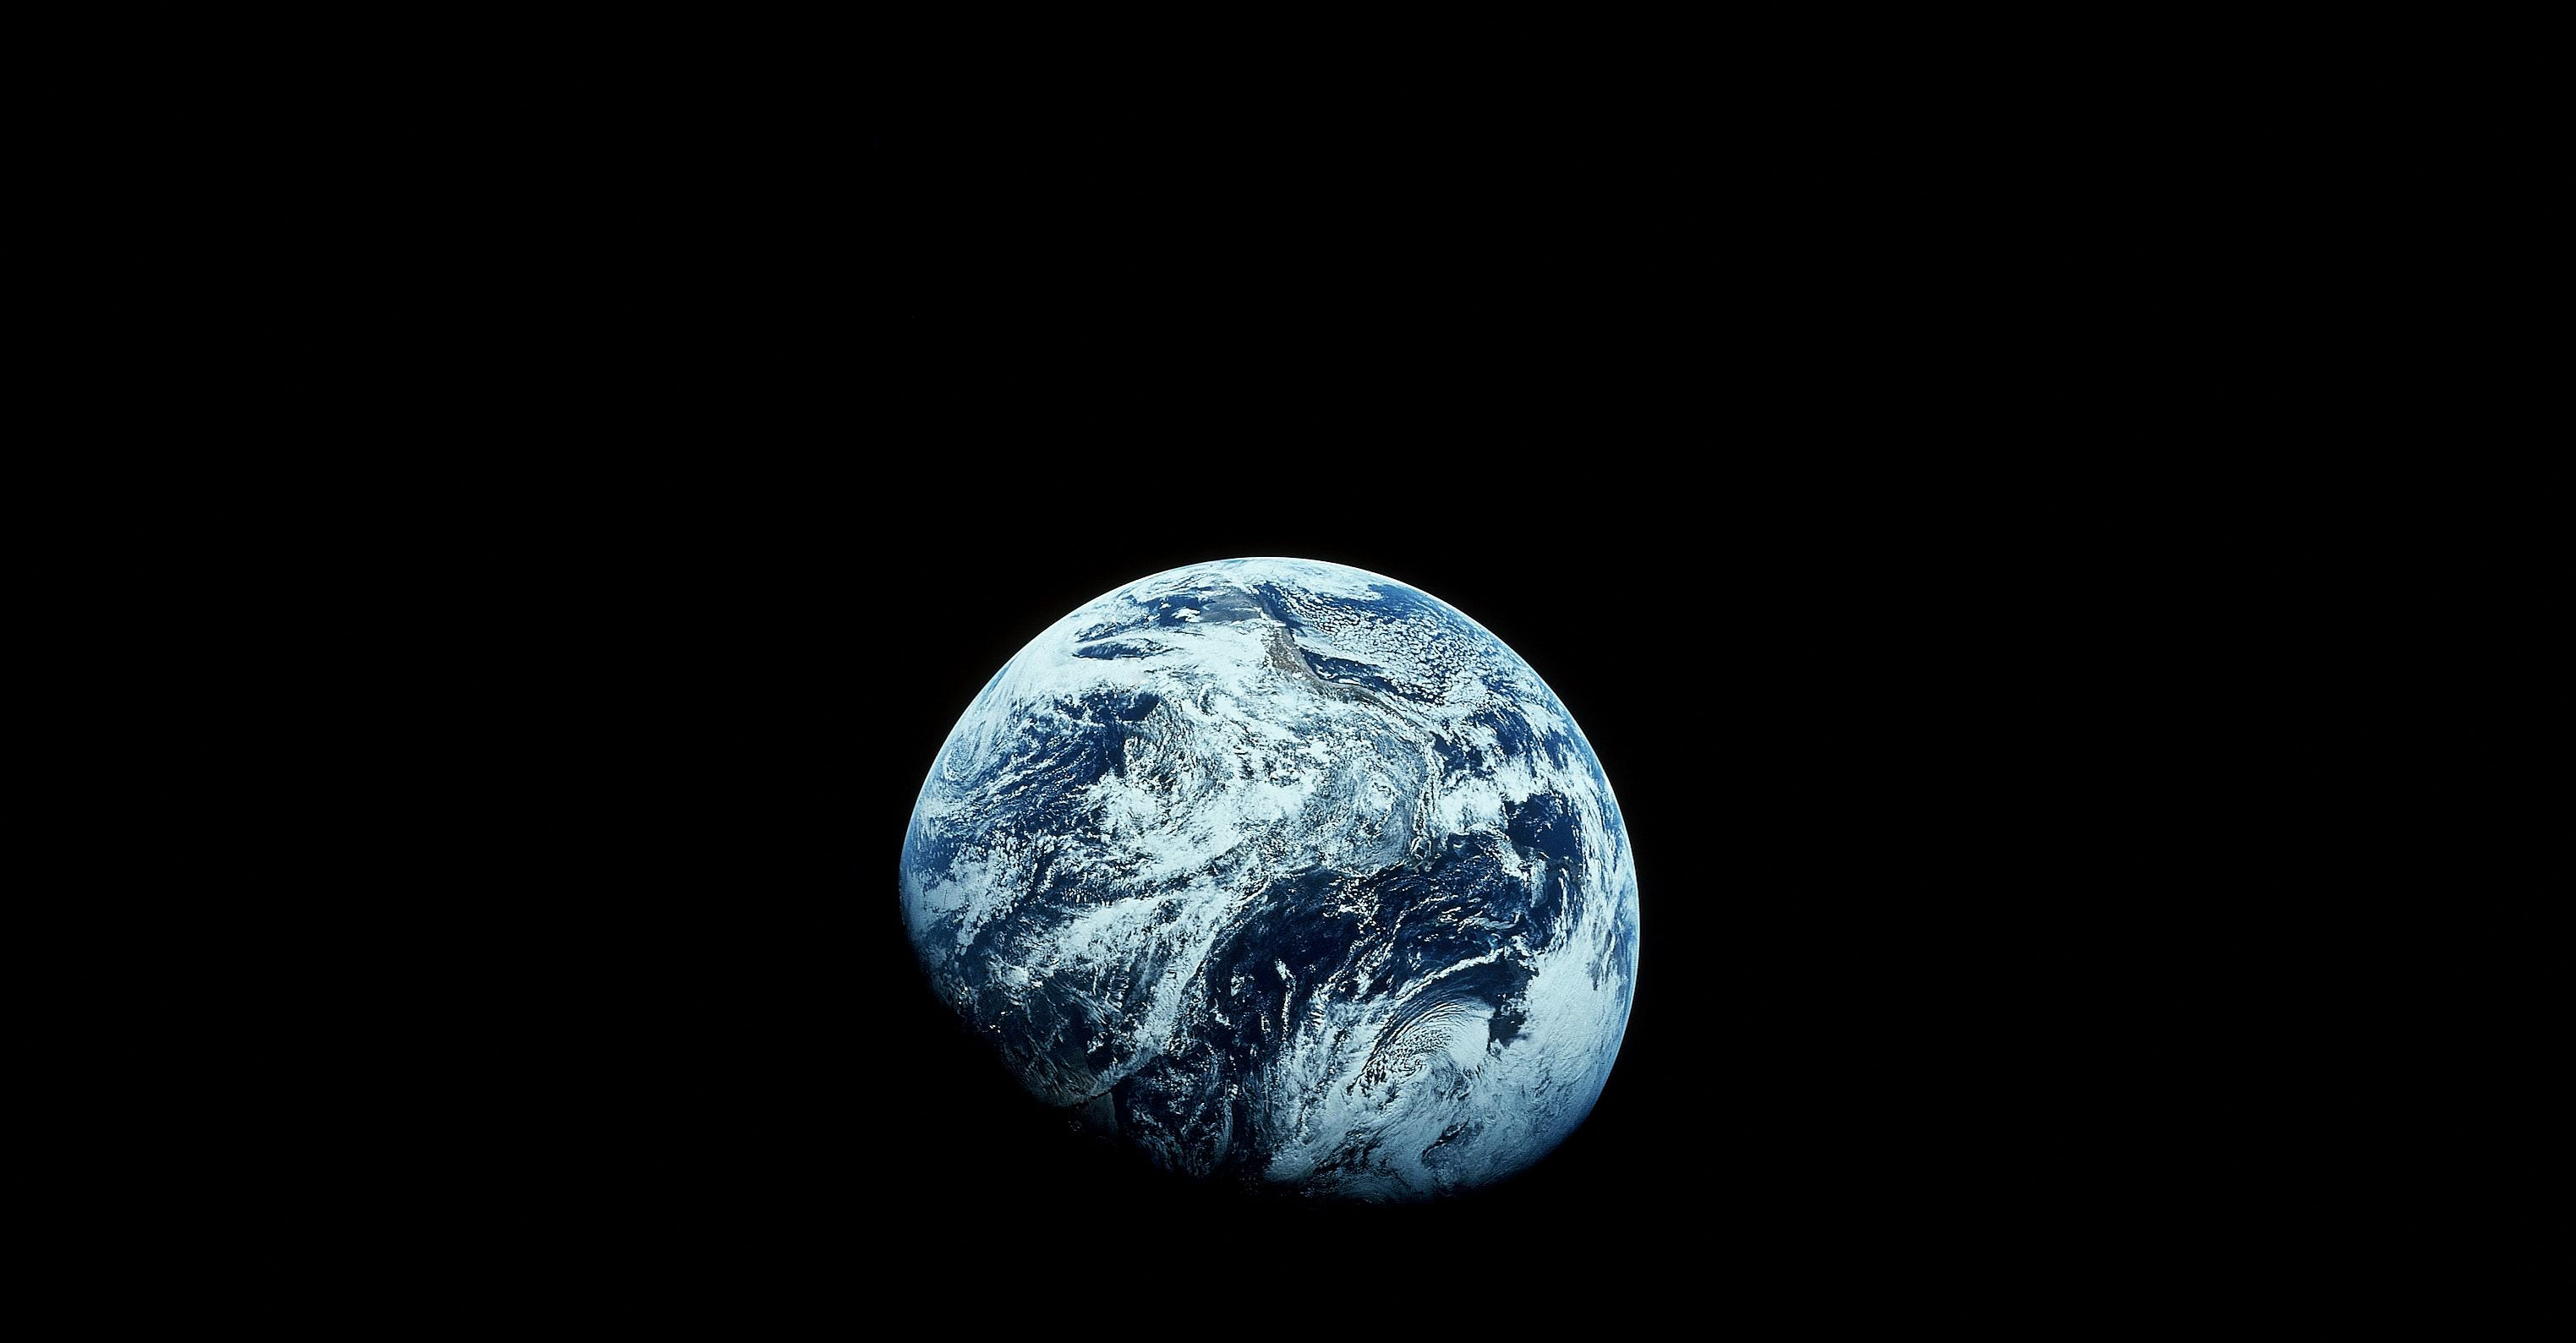 Ask USA TODAY: Has Earth shifted on axis?